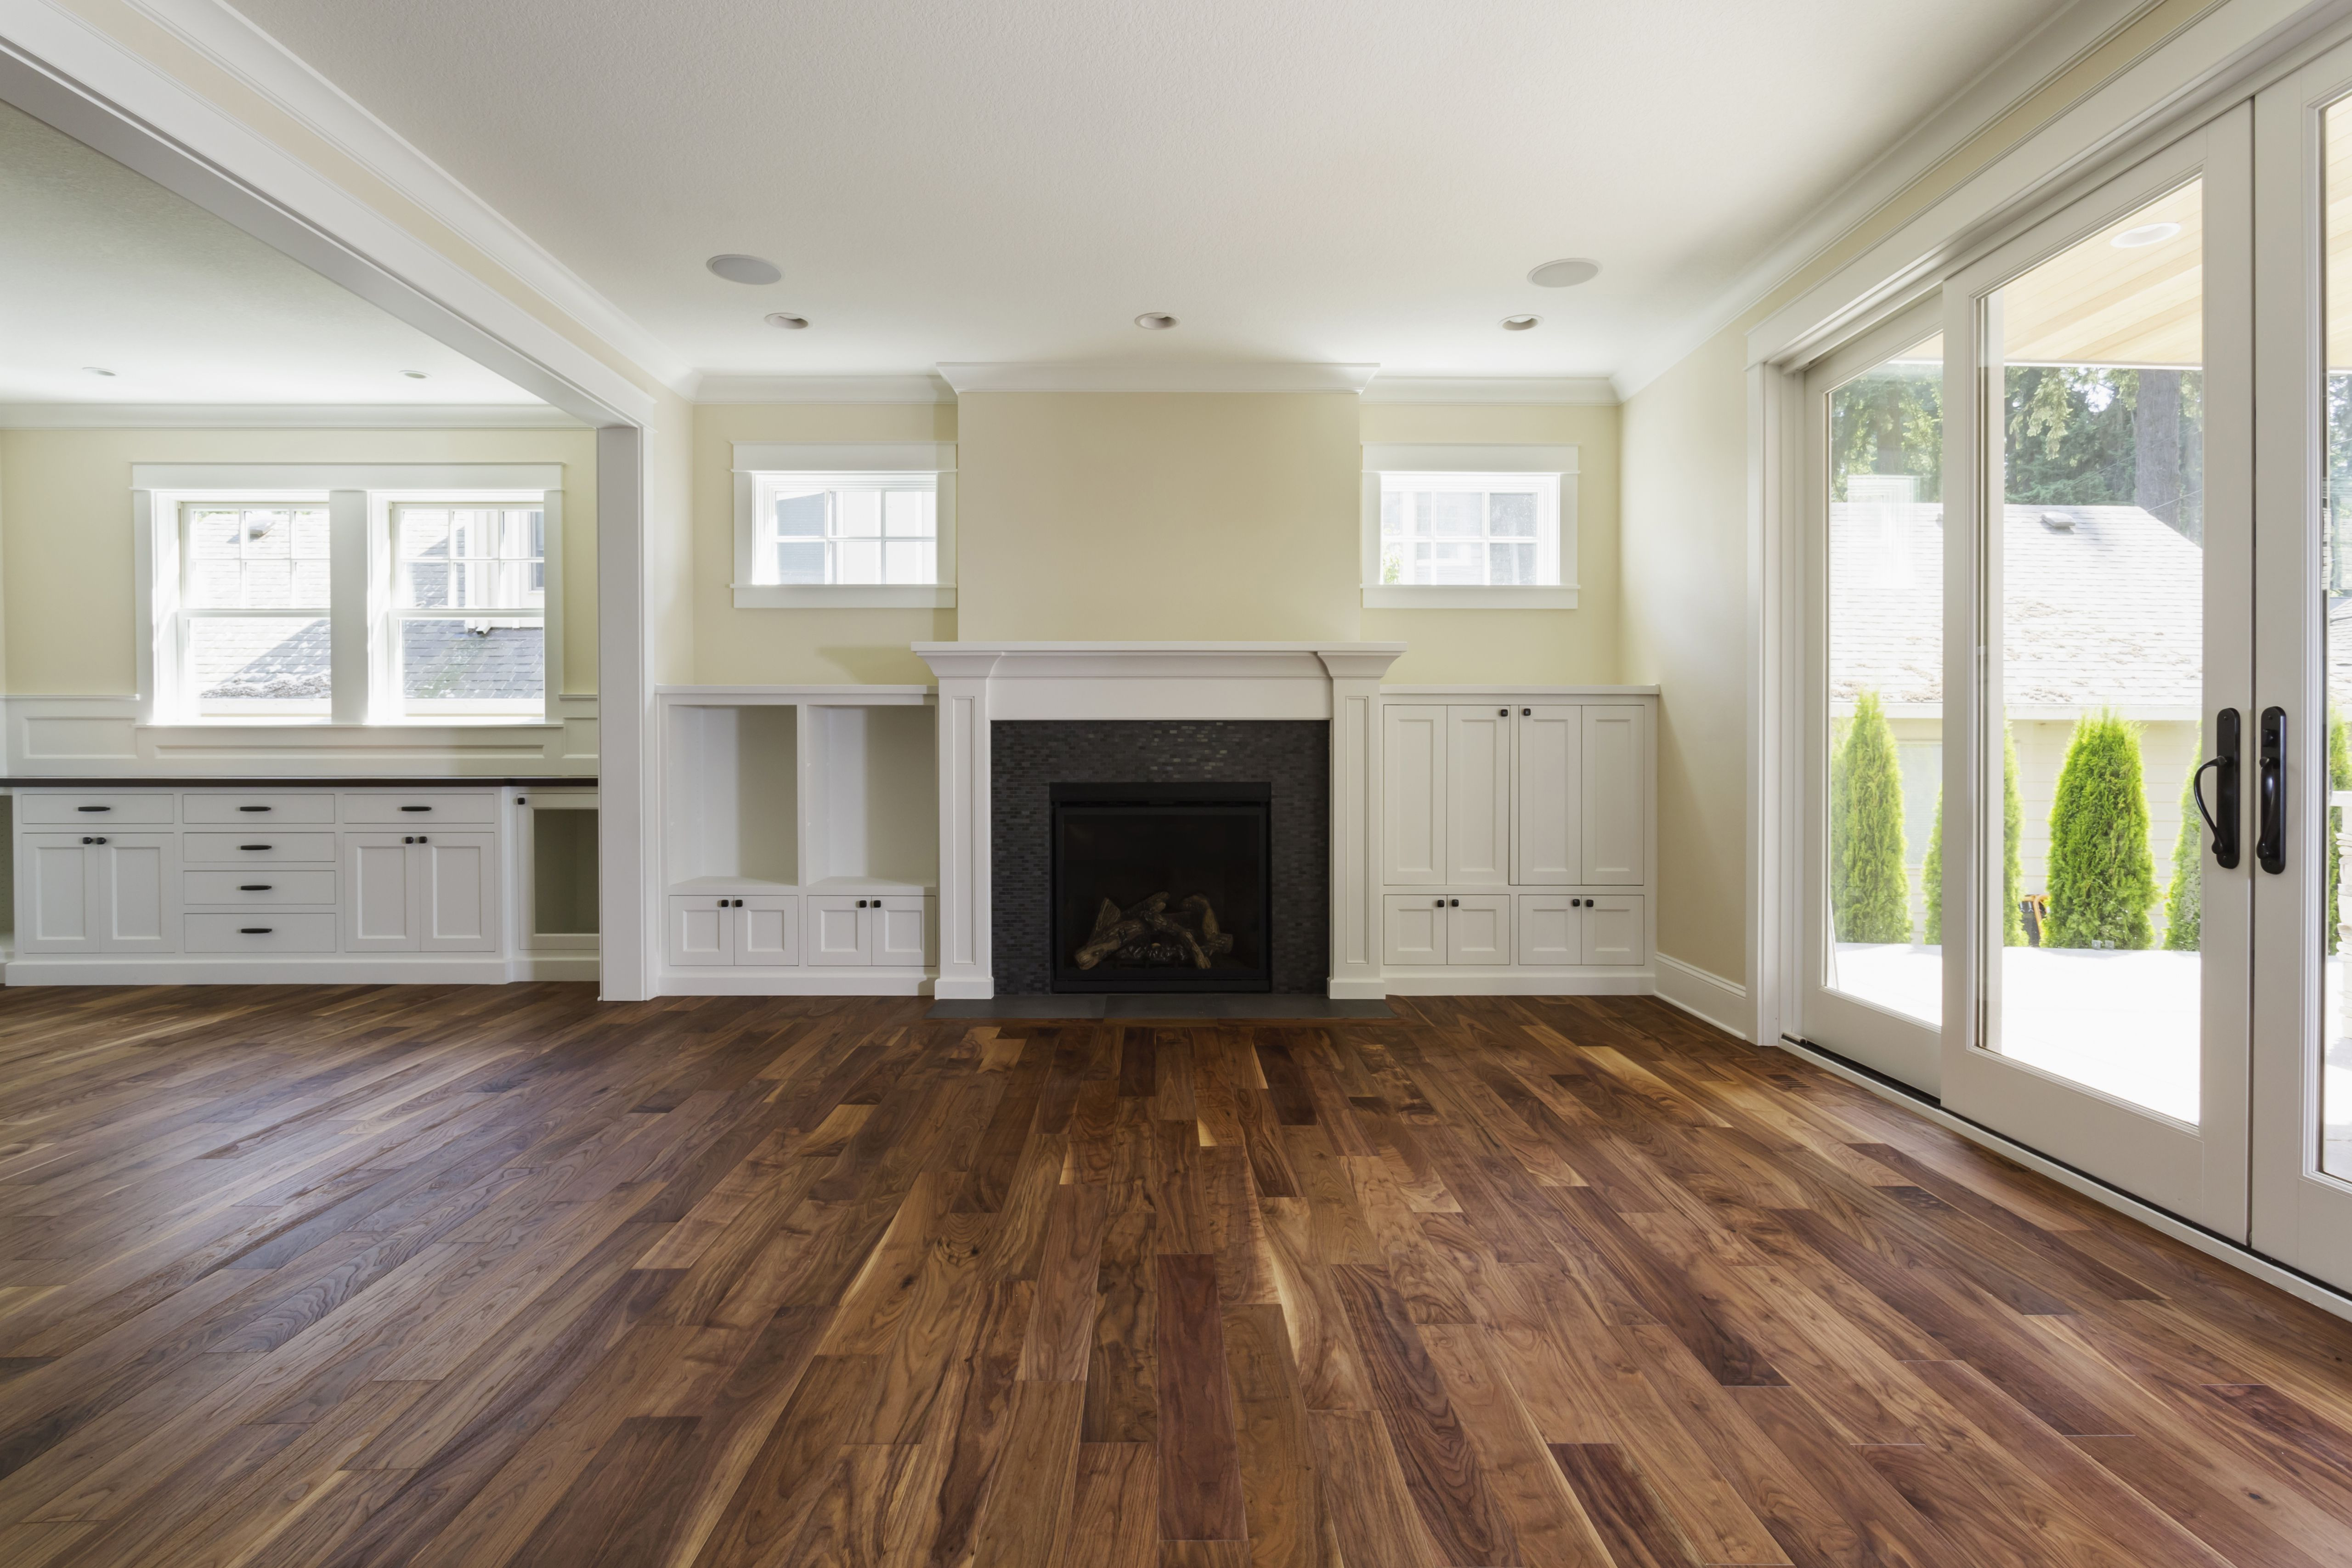 cheap hardwood flooring atlanta of the pros and cons of prefinished hardwood flooring pertaining to fireplace and built in shelves in living room 482143011 57bef8e33df78cc16e035397